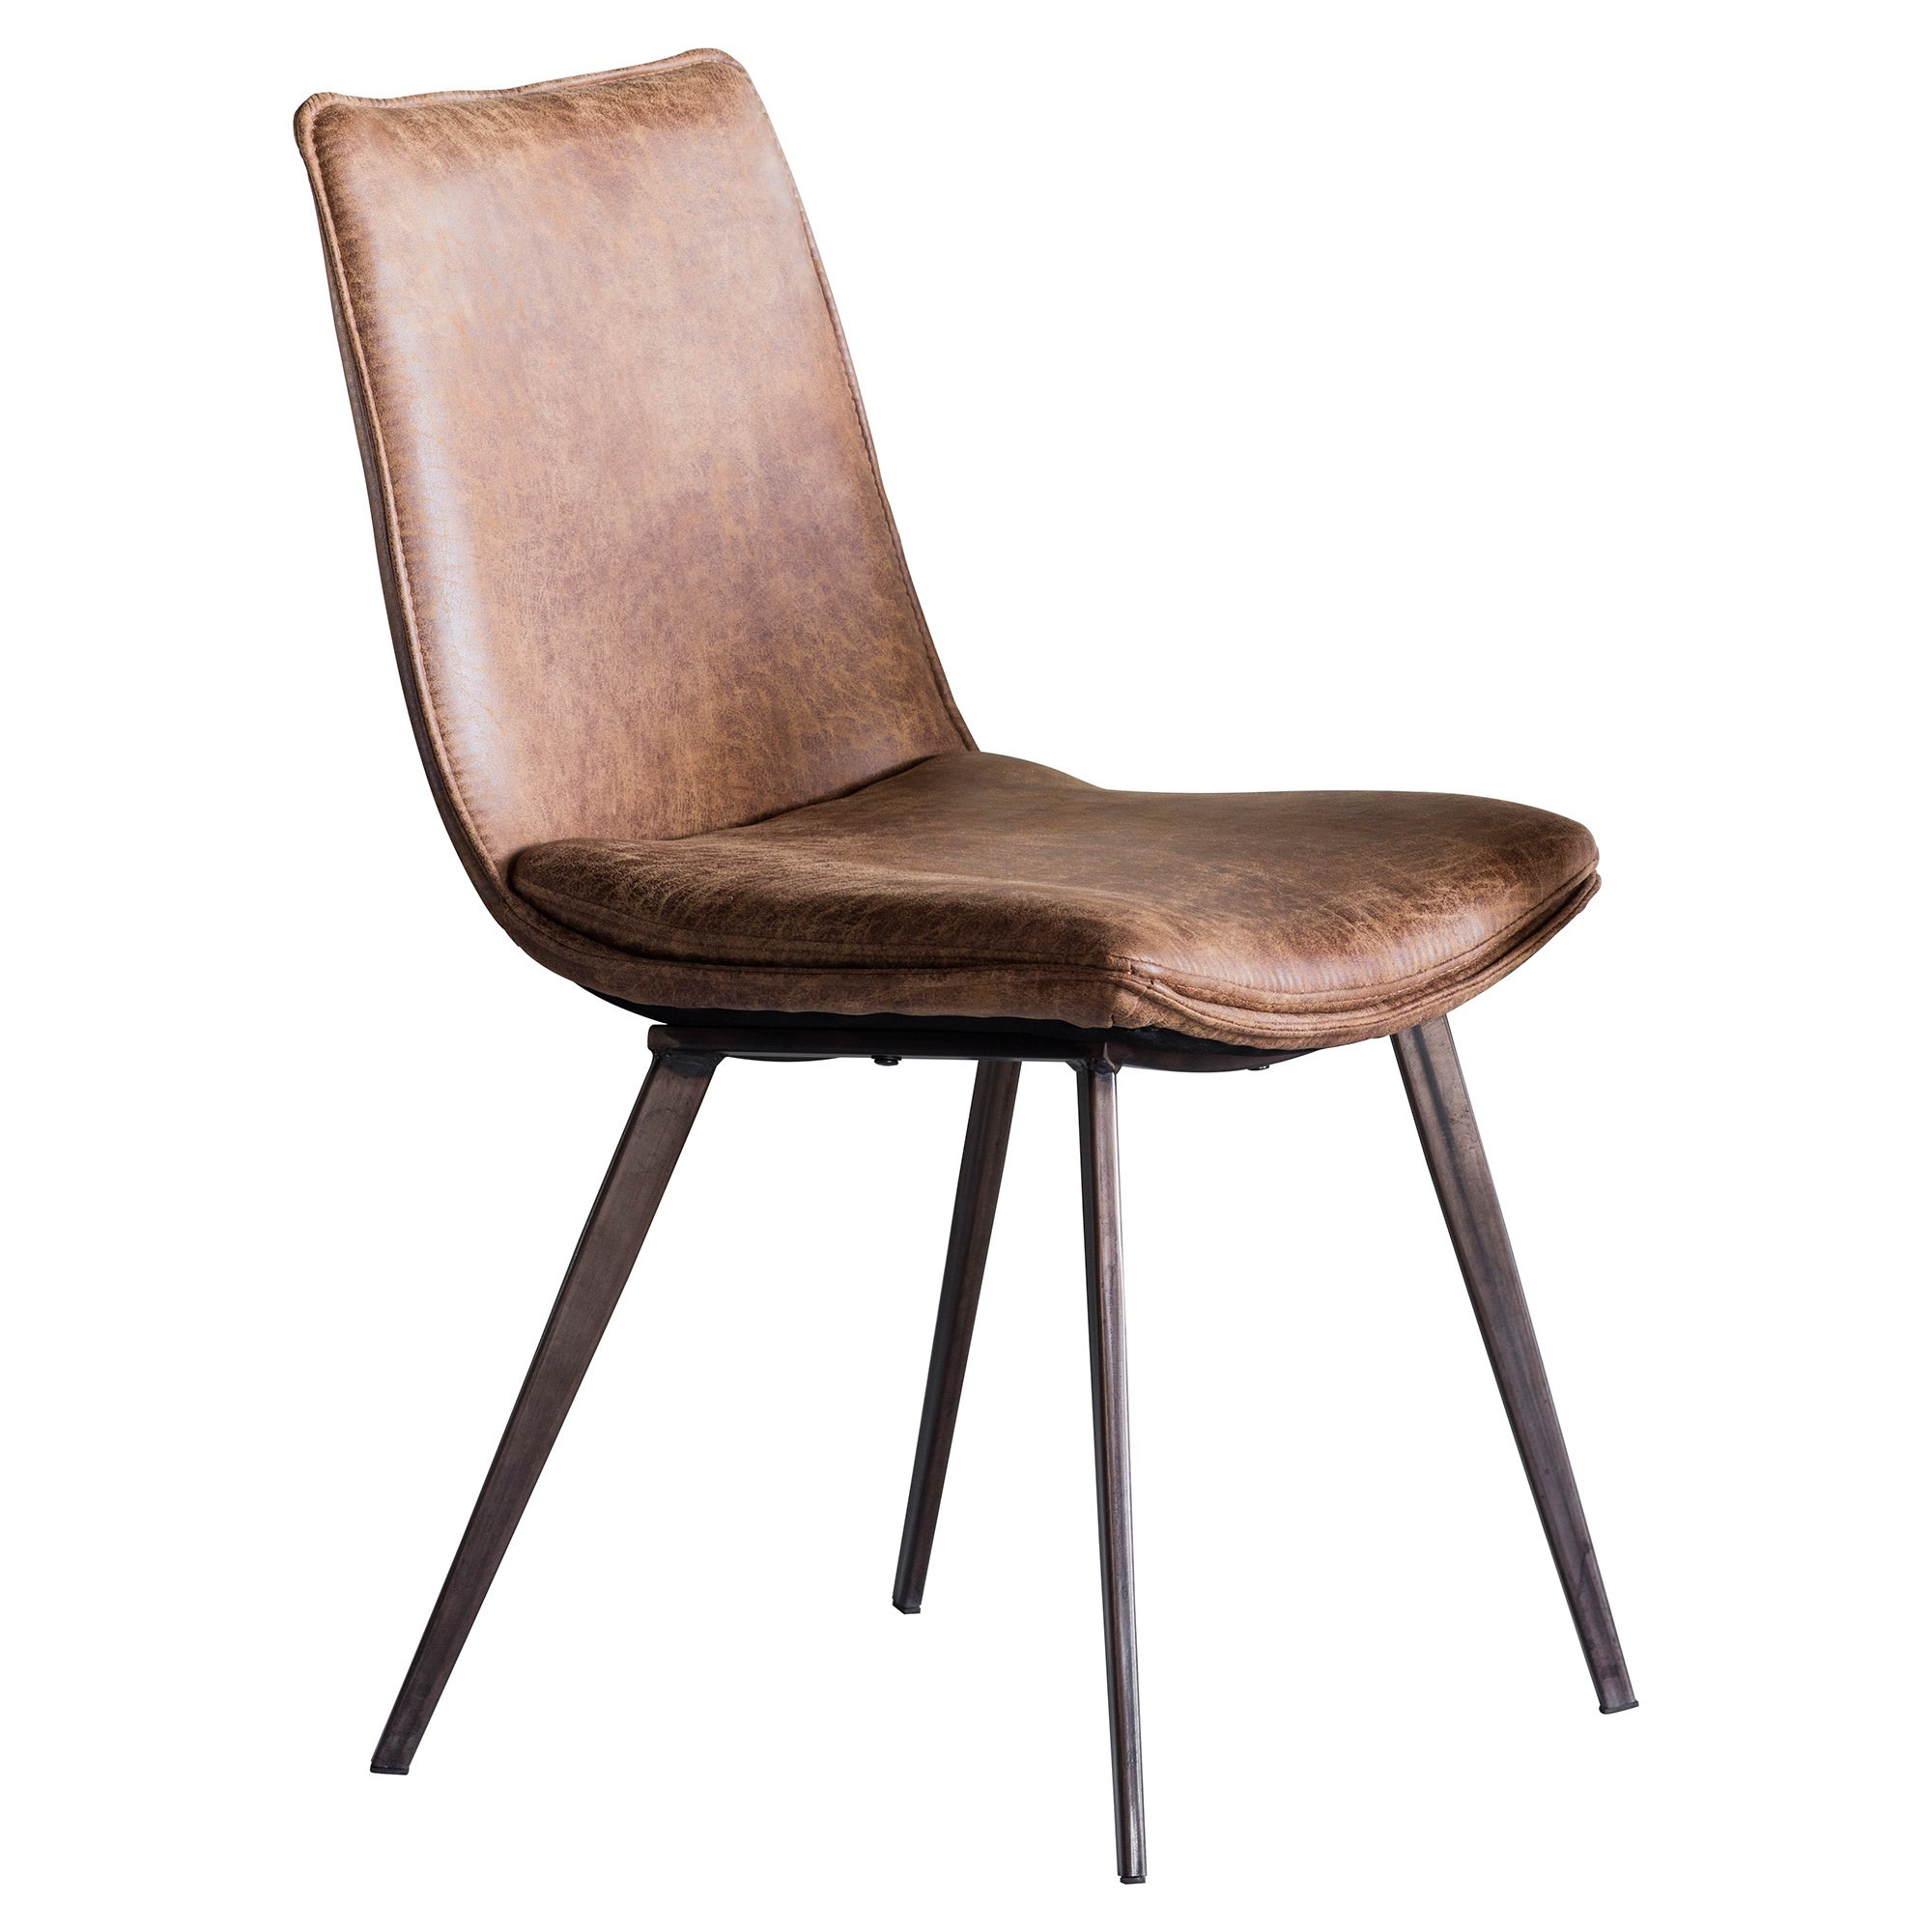 Henrik Faux Leather Dining Chair, Tan